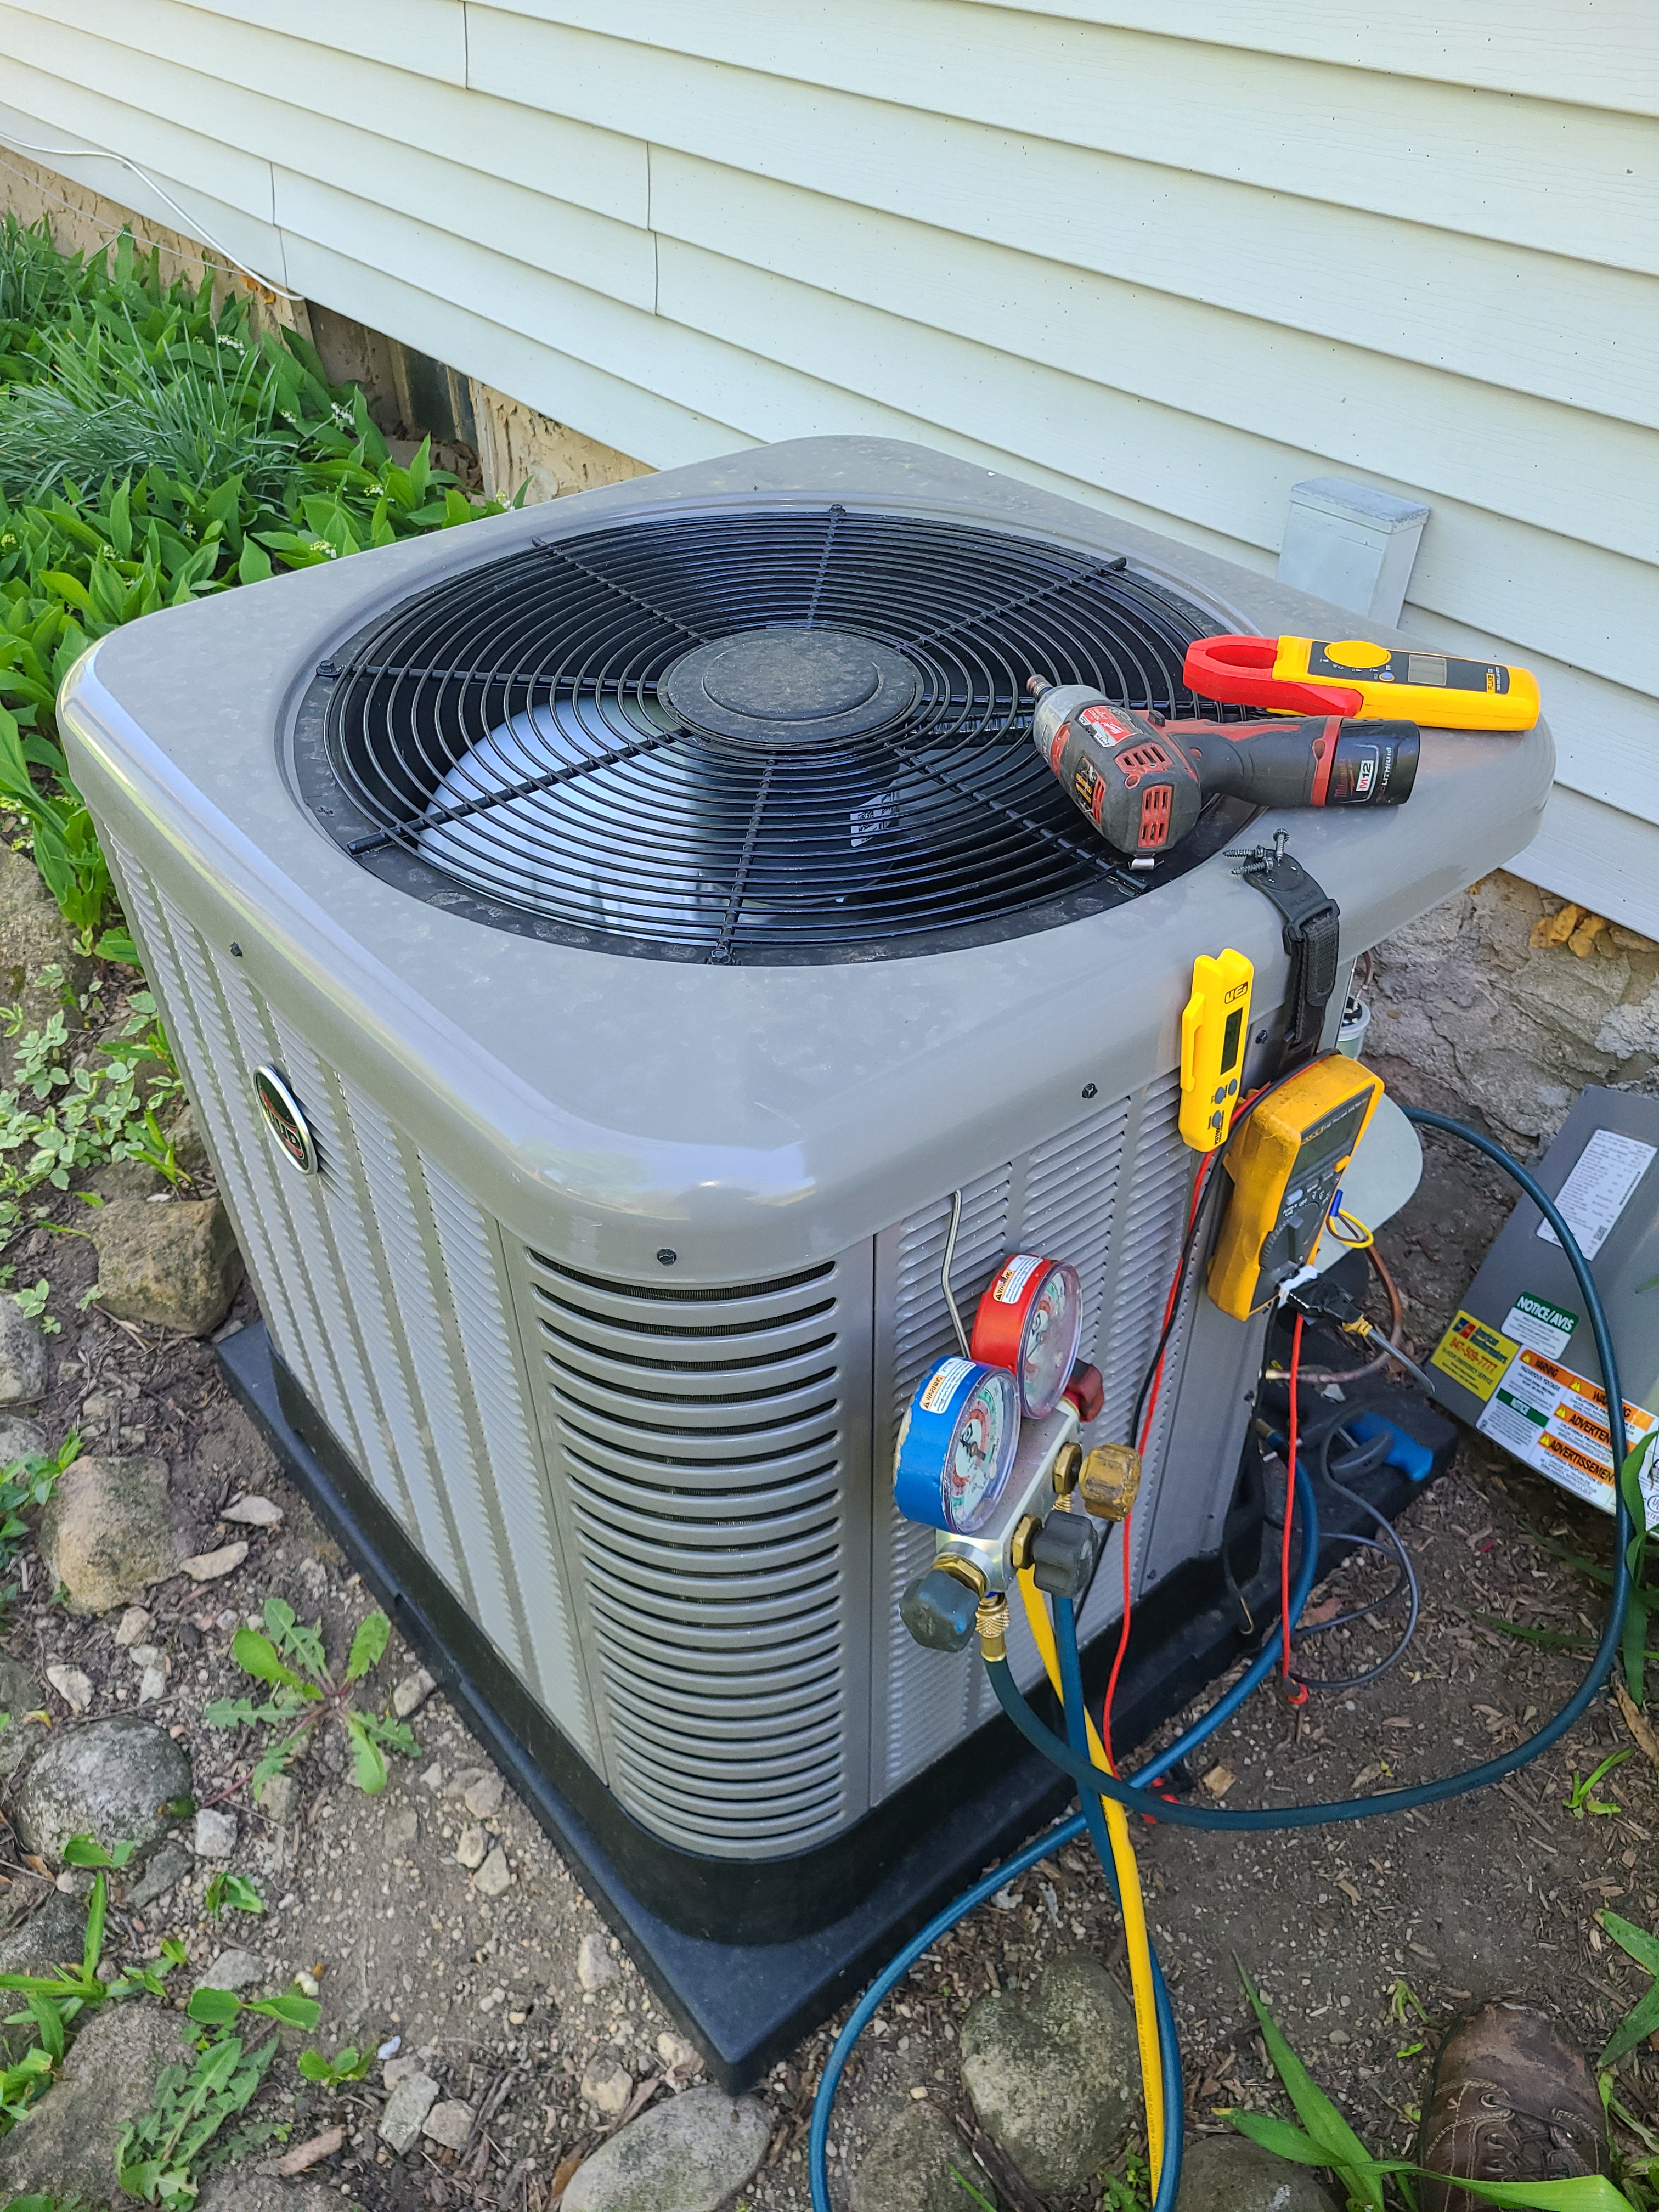 Ruud new ac installed and start up performed. System runs great!